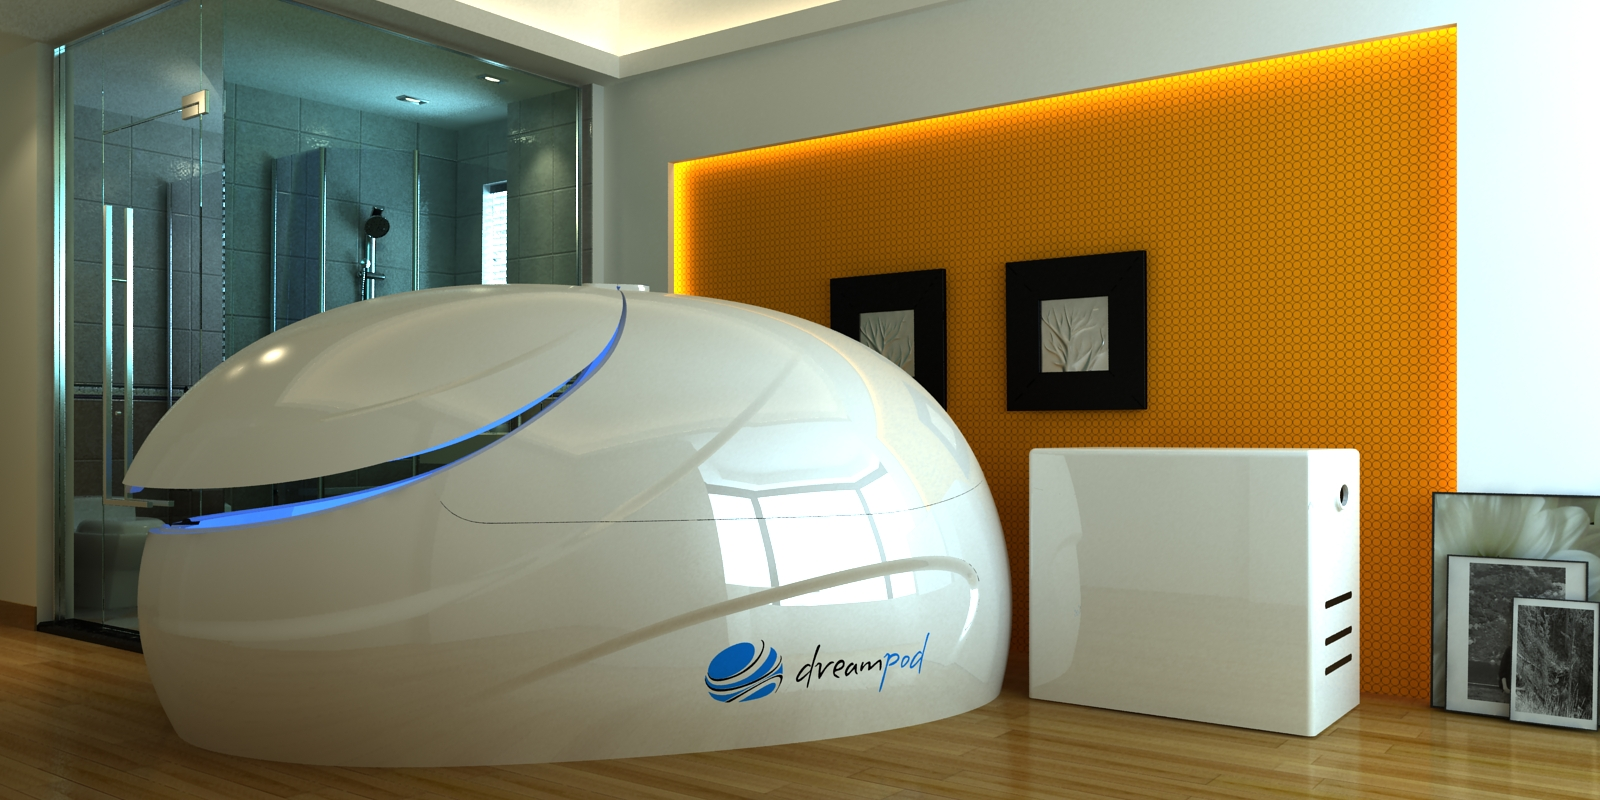 Dreampod Float Tank